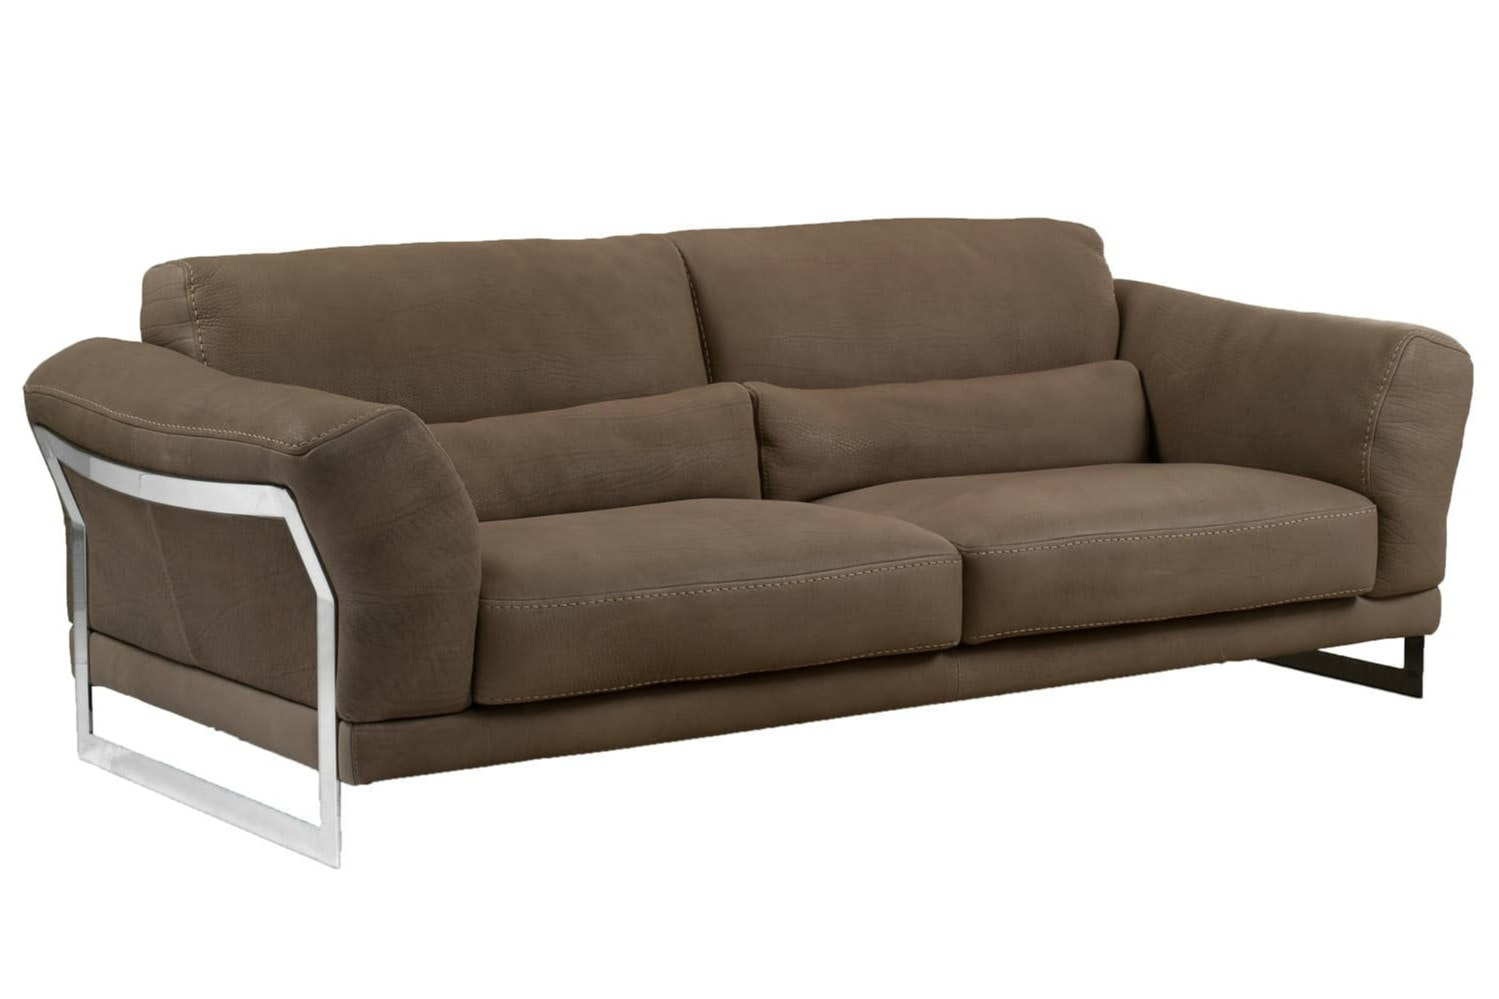 Giotto 3 Seater Sofa